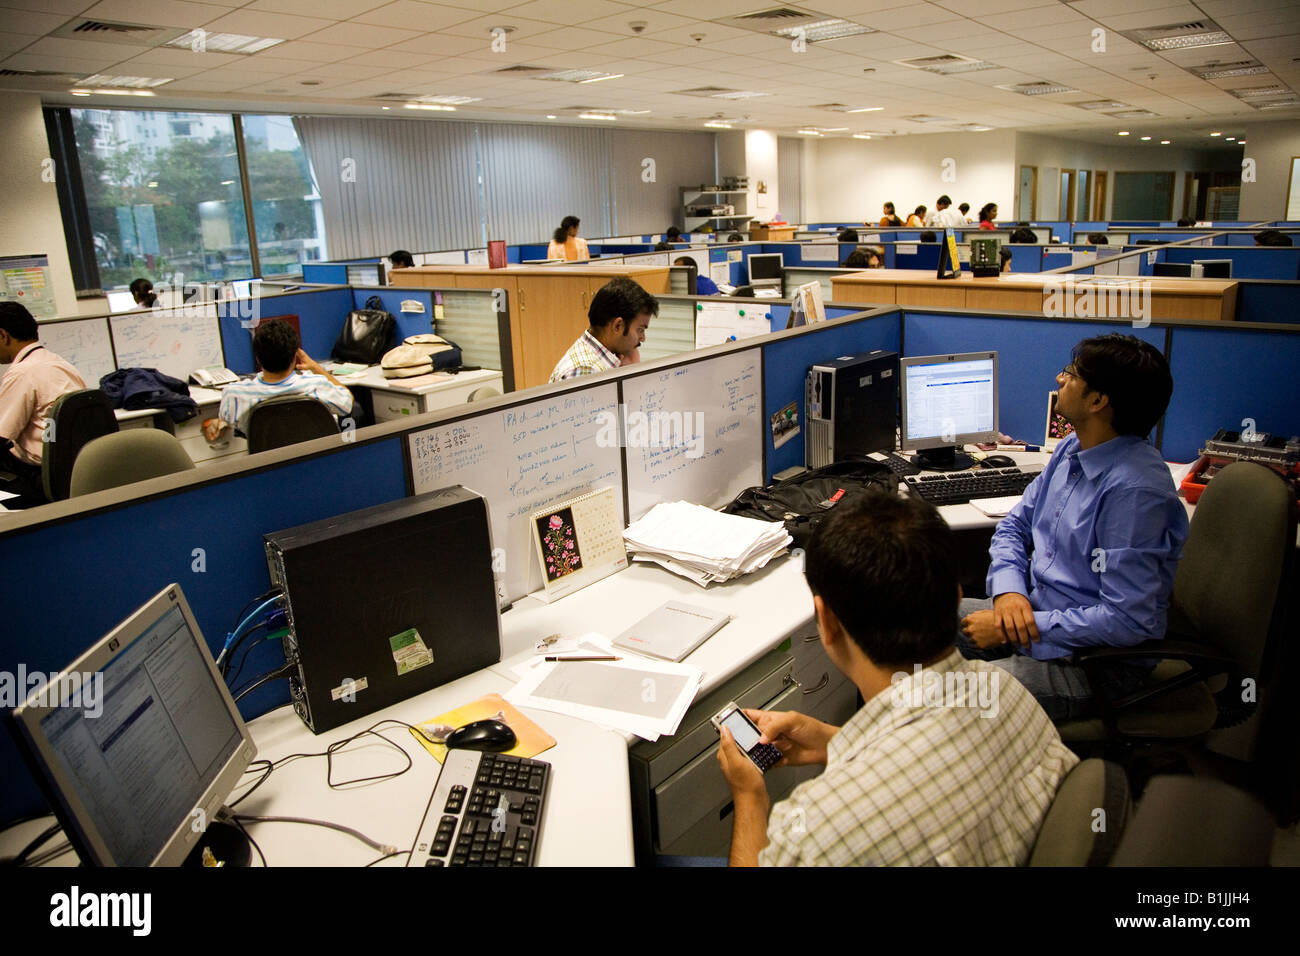 outsourcing development work to india Here are the 6 best online outsourcing websites here are the 6 best online outsourcing websites  i actually do development work there under the handle teddy have a look and see if it can be a fit for you  hiring programmers from india was a disaster for me i never was lucky to work with a good developer from india: bad work quality.